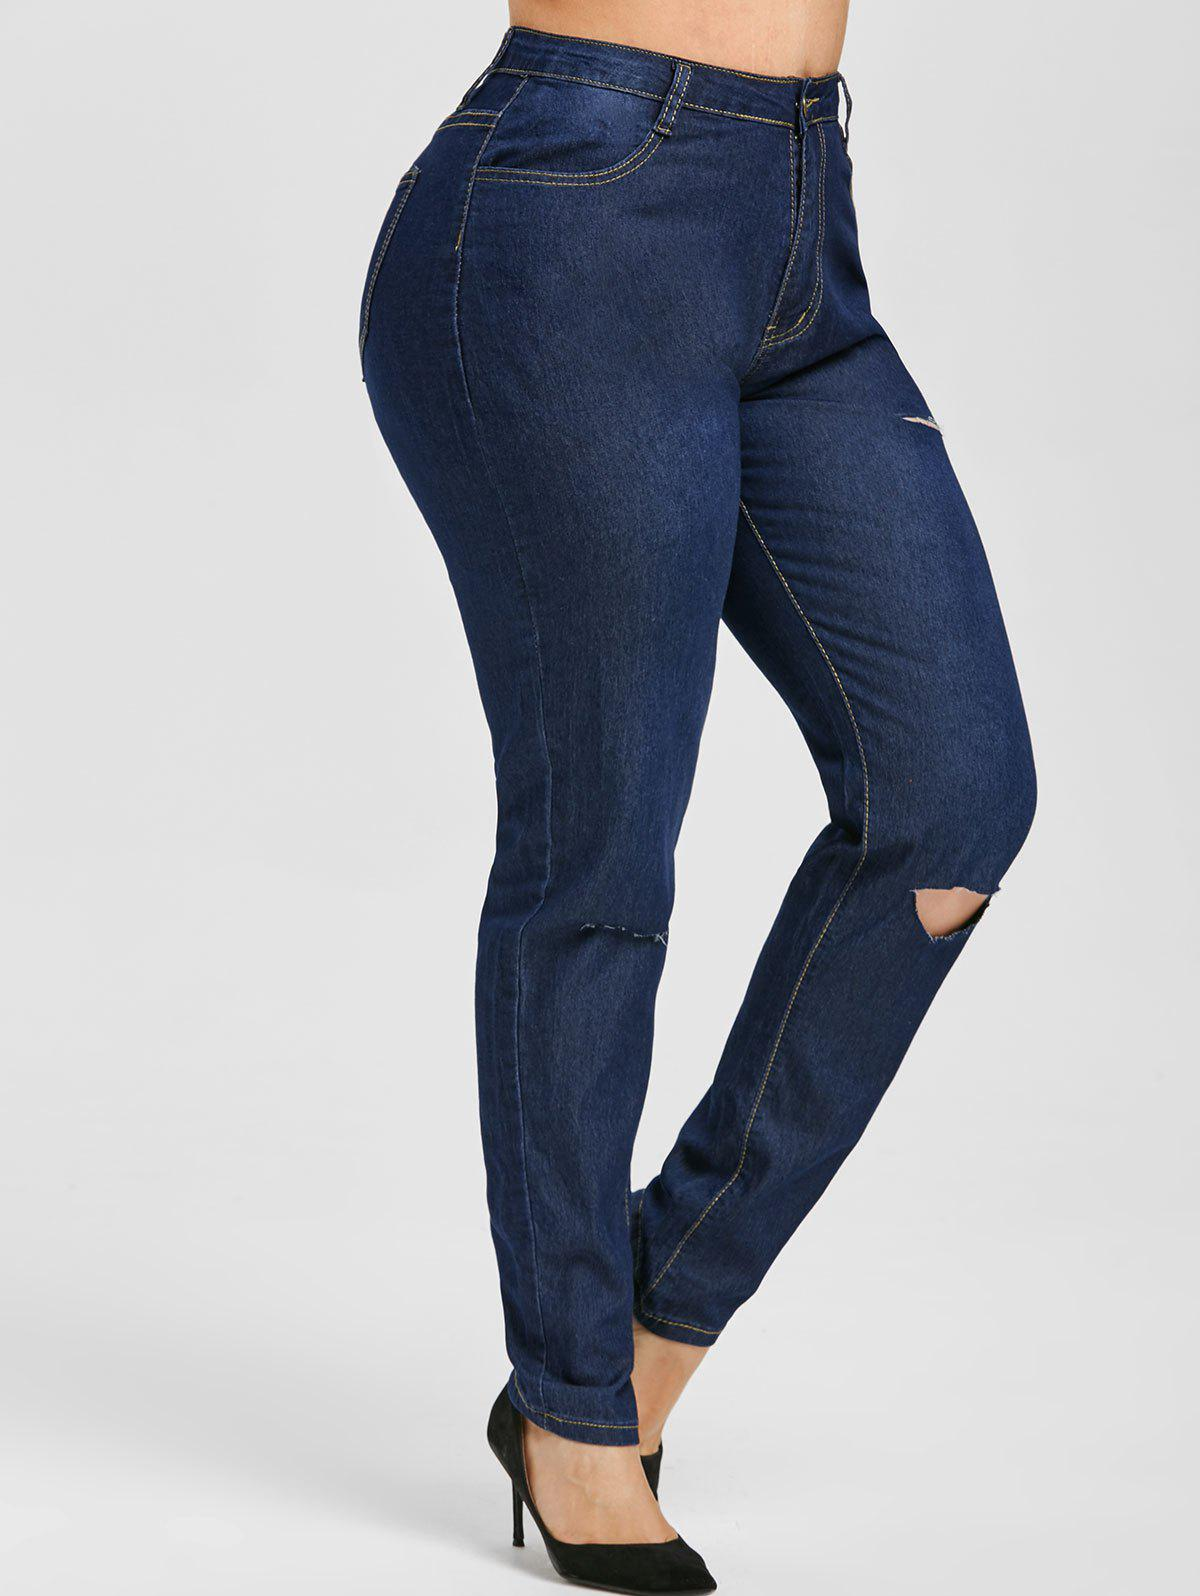 Distressed Cutout High Waisted Plus Size Skinny Jeans - DEEP BLUE 5XL